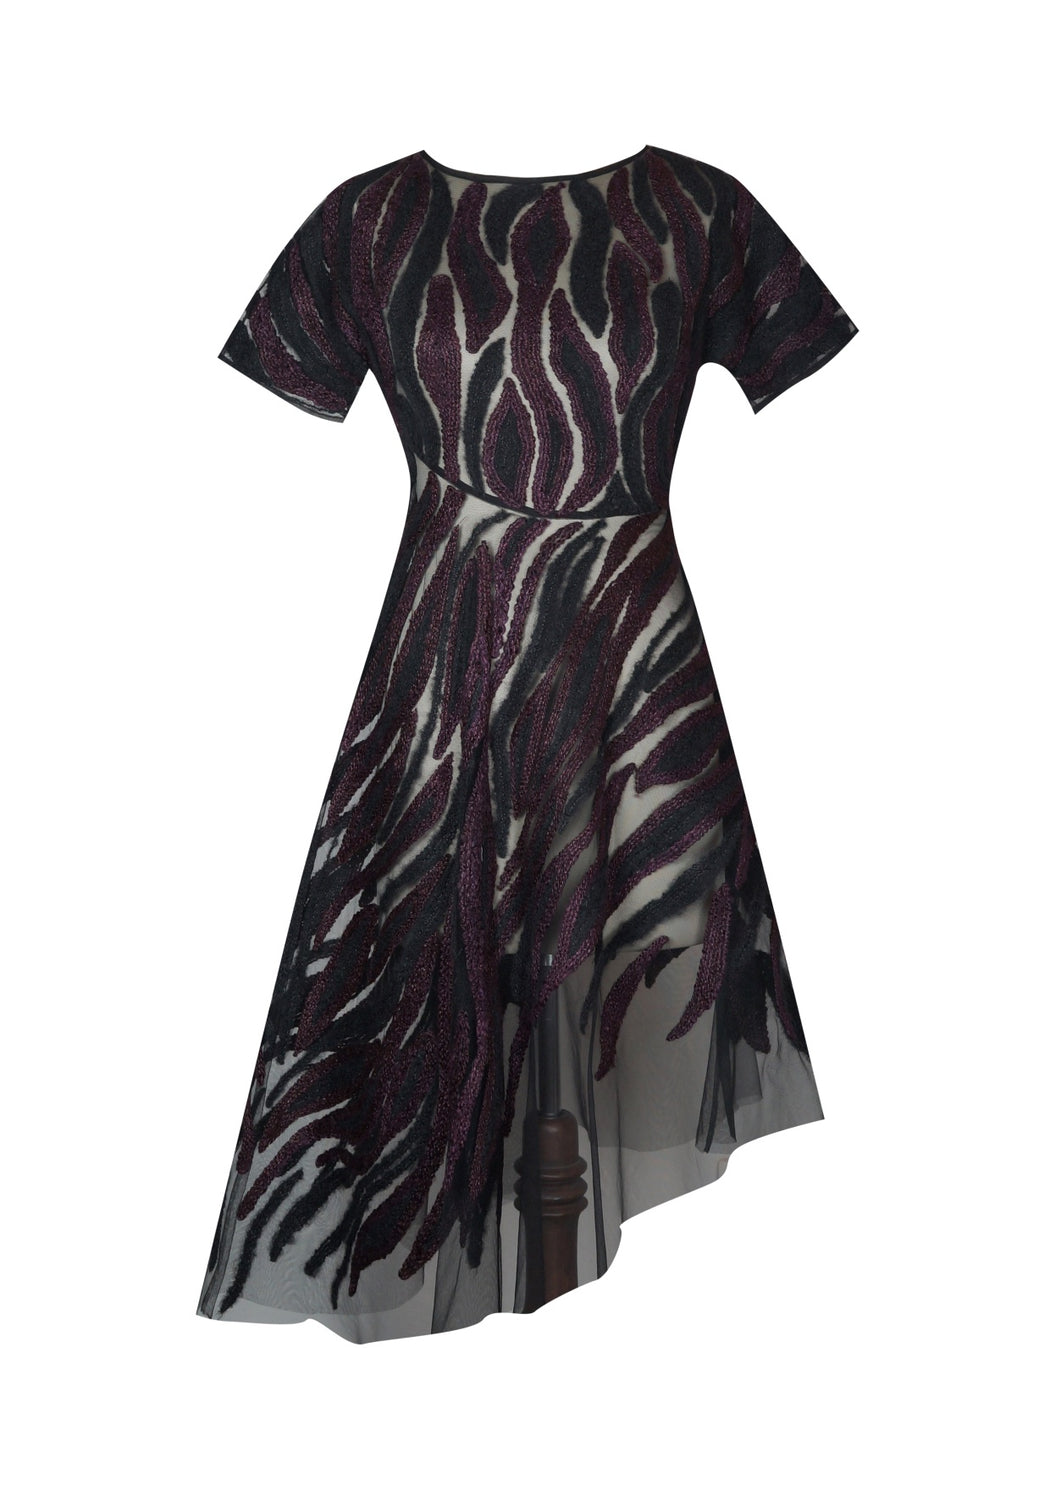 BIRDWALK DORI EMBROIDERED DRESS